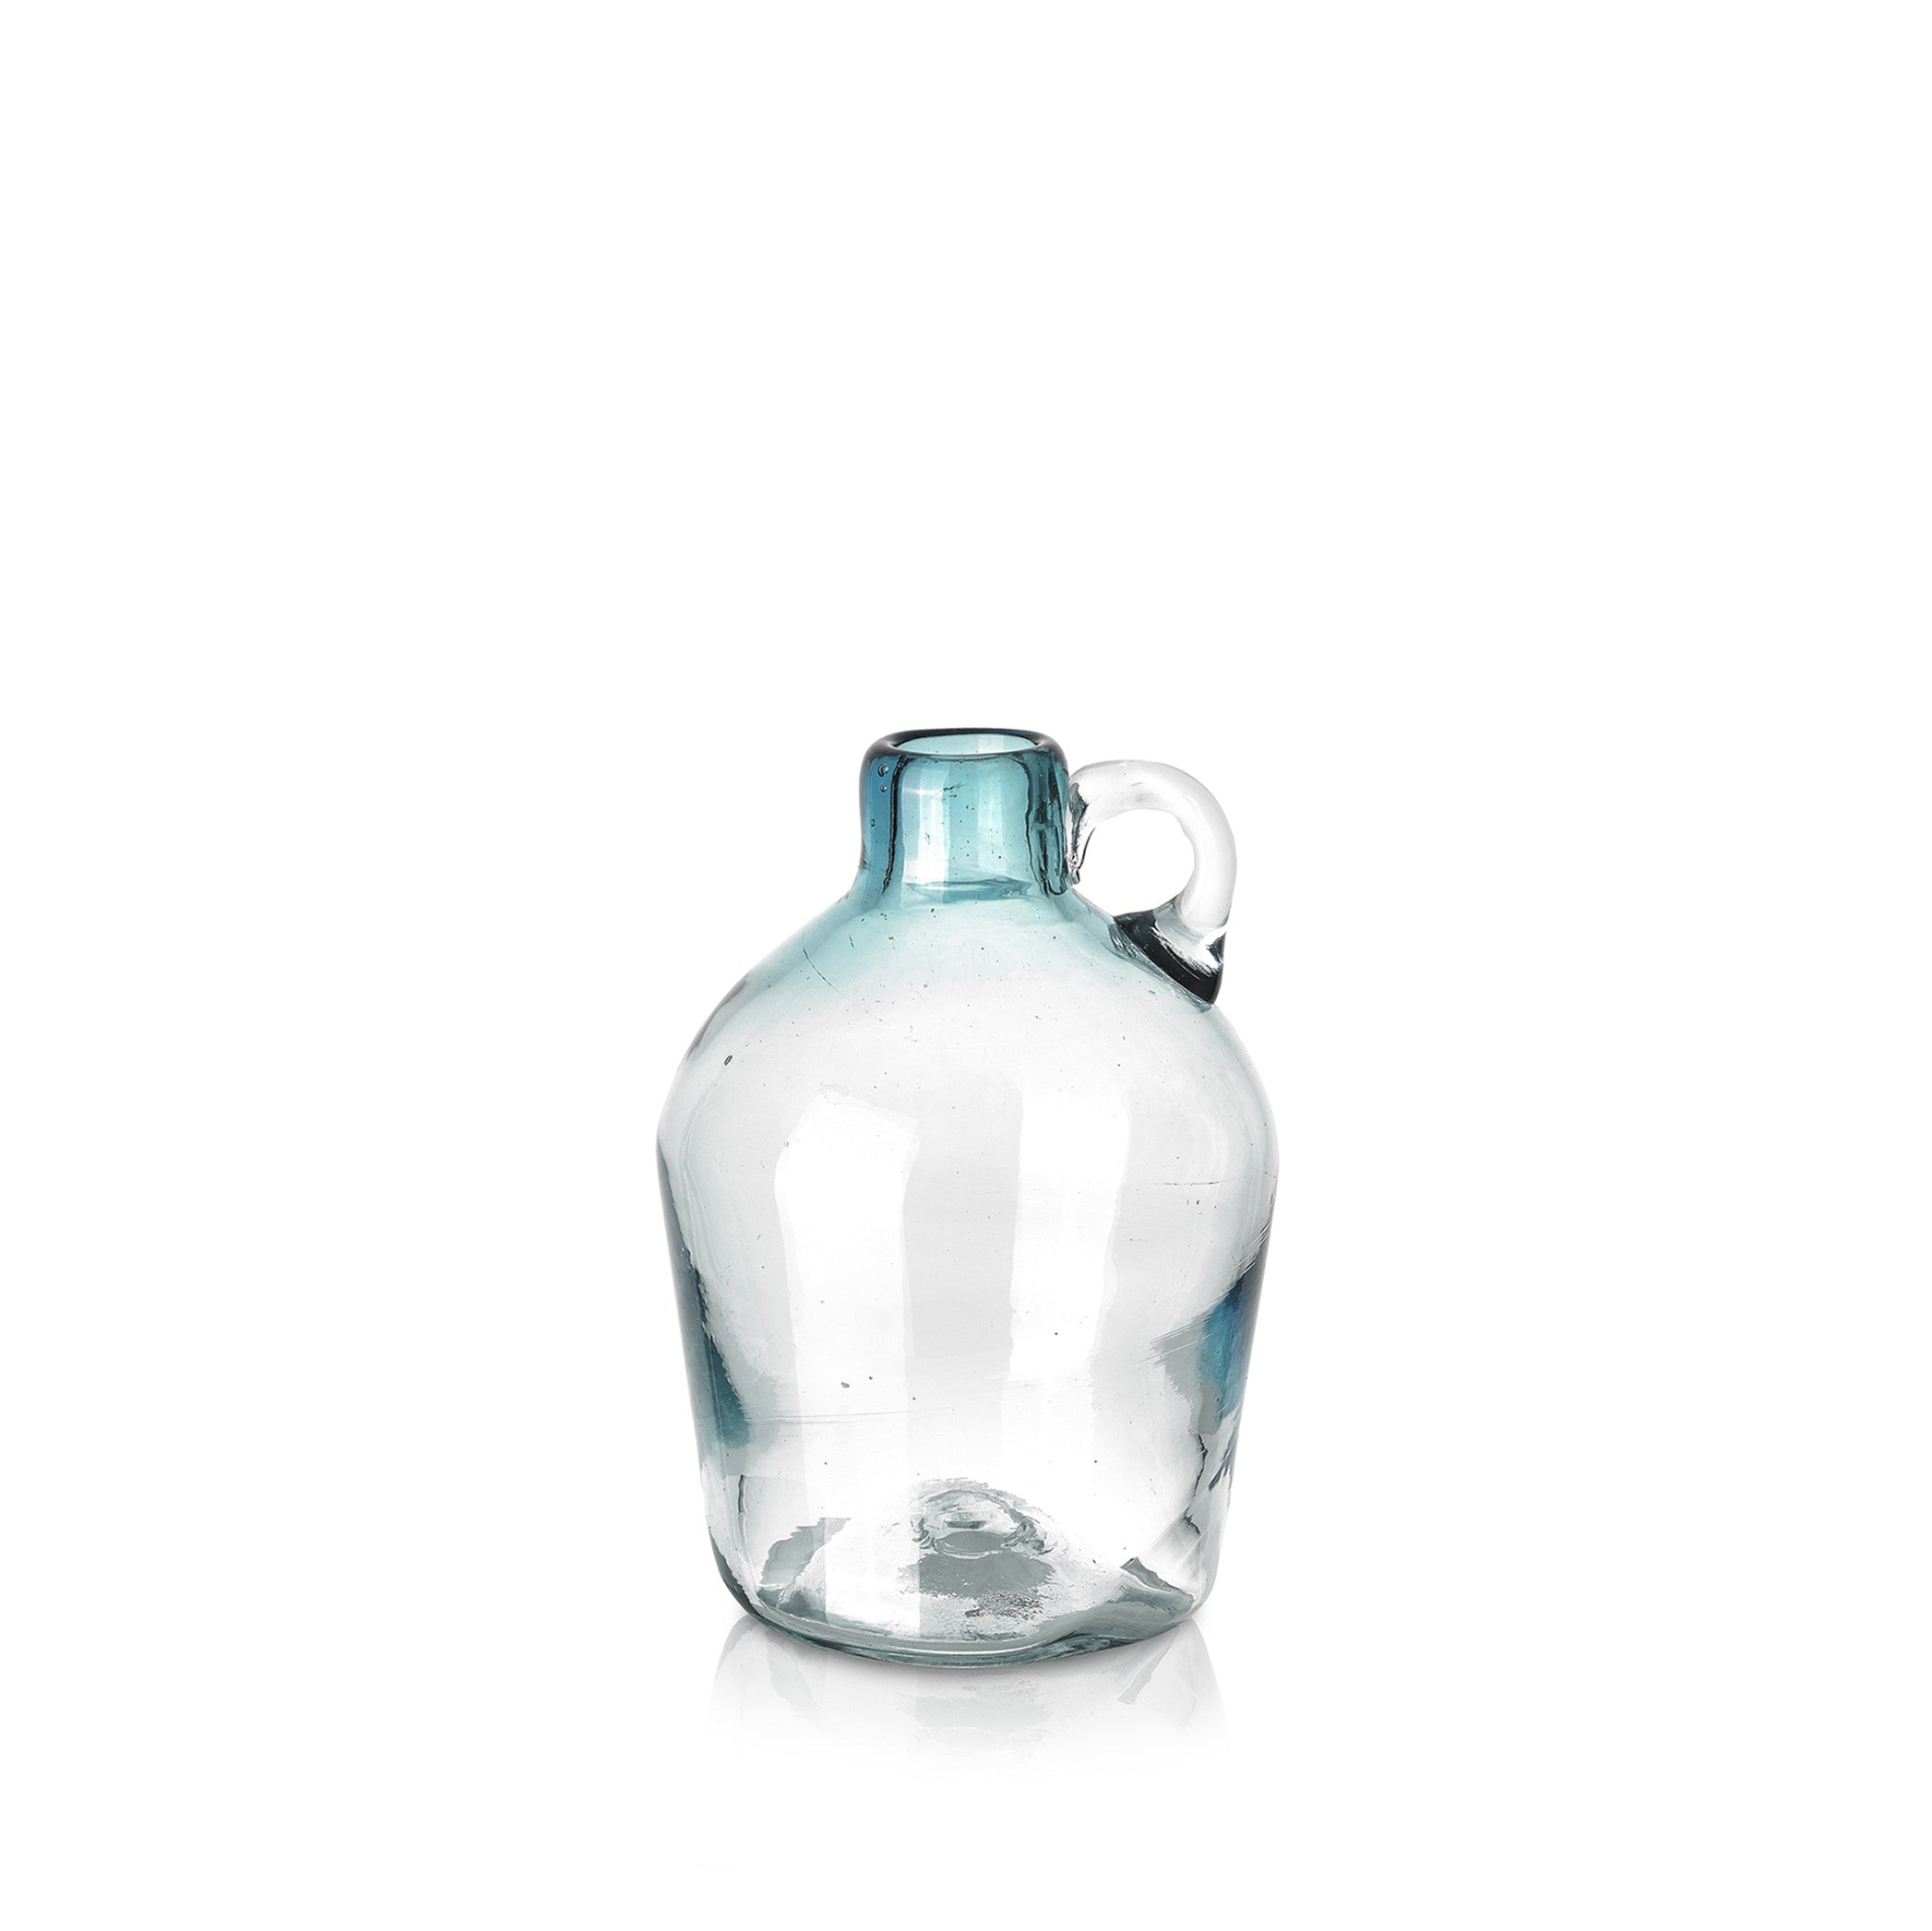 Handblown Glass Pitcher in Turquoise, 18cm